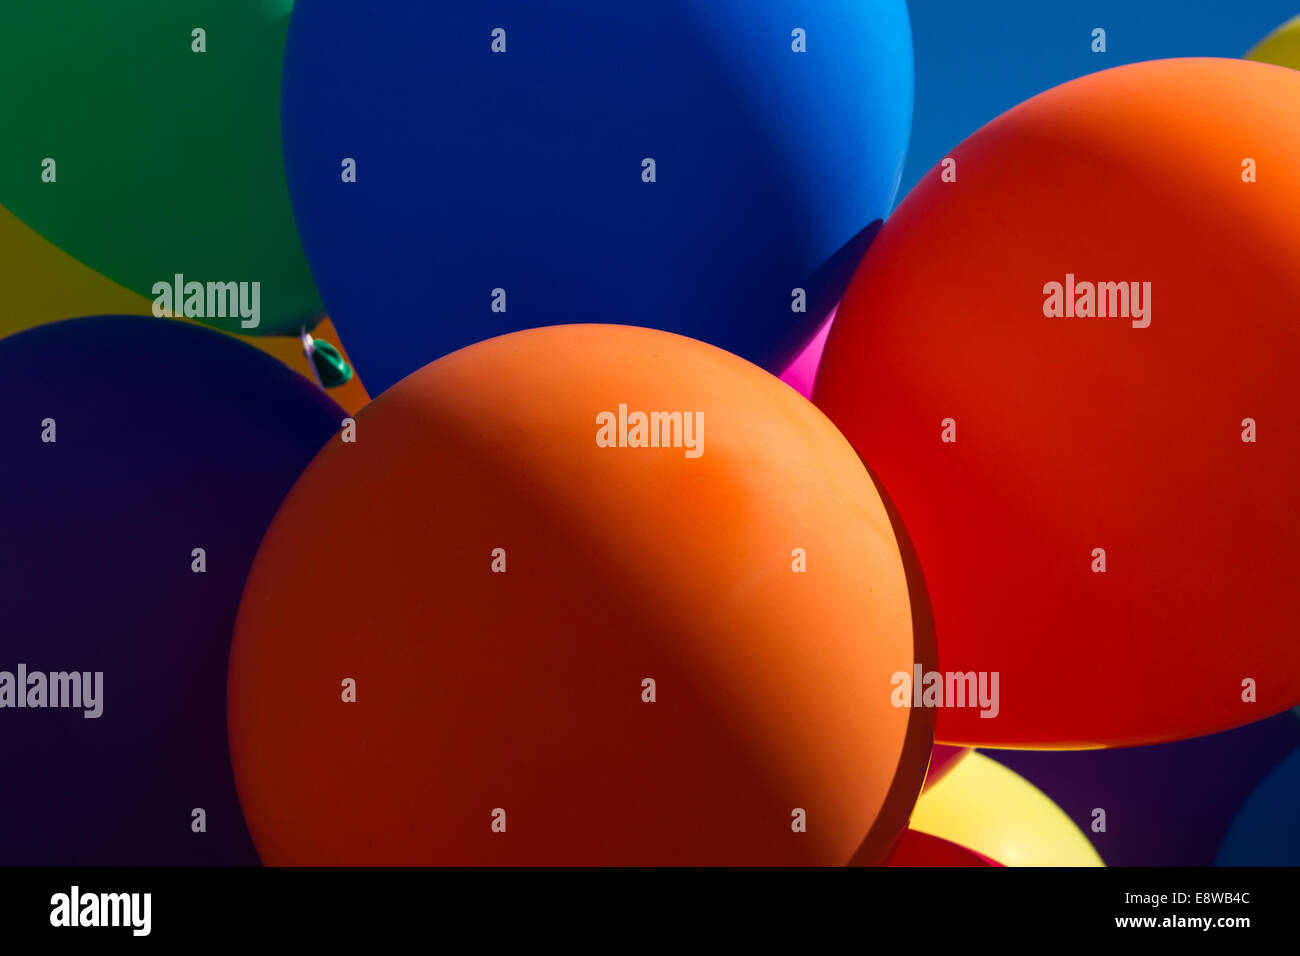 Festive Mood. Closeup view of inflatable balloons of bright and intense colors - Stock Image